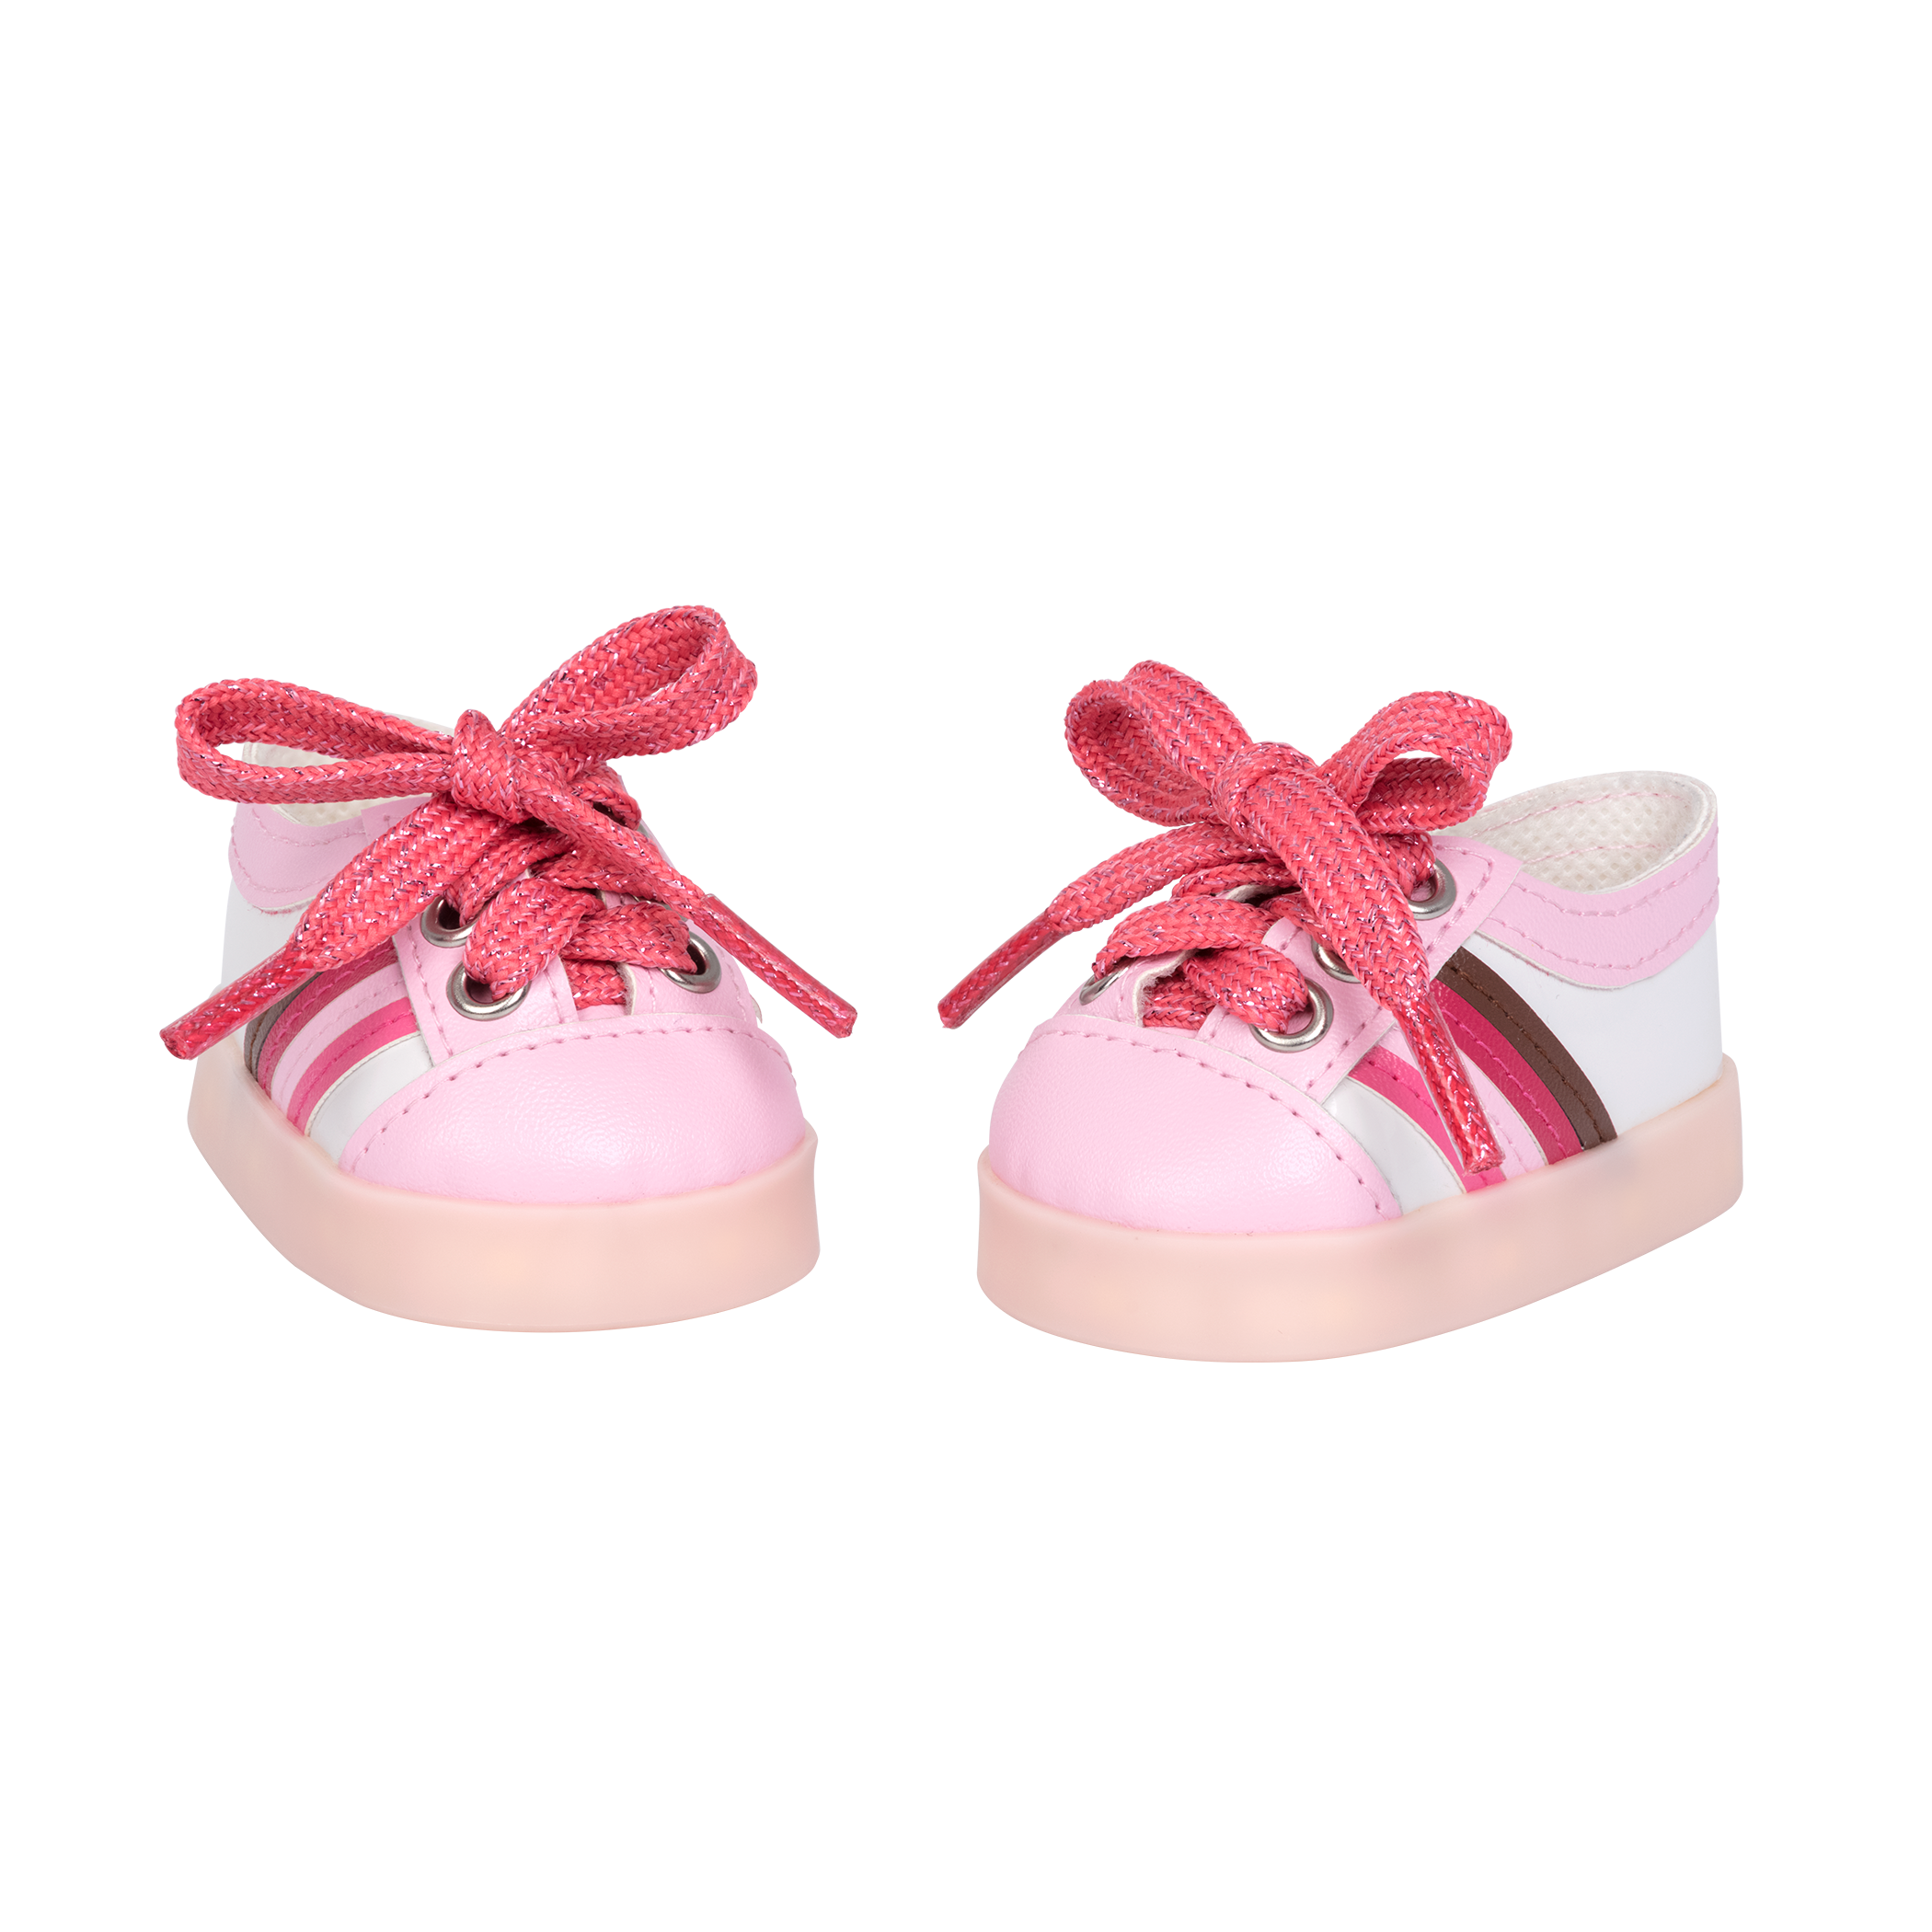 Rainbow Delight Light-Up Shoes for 18-inch Dolls